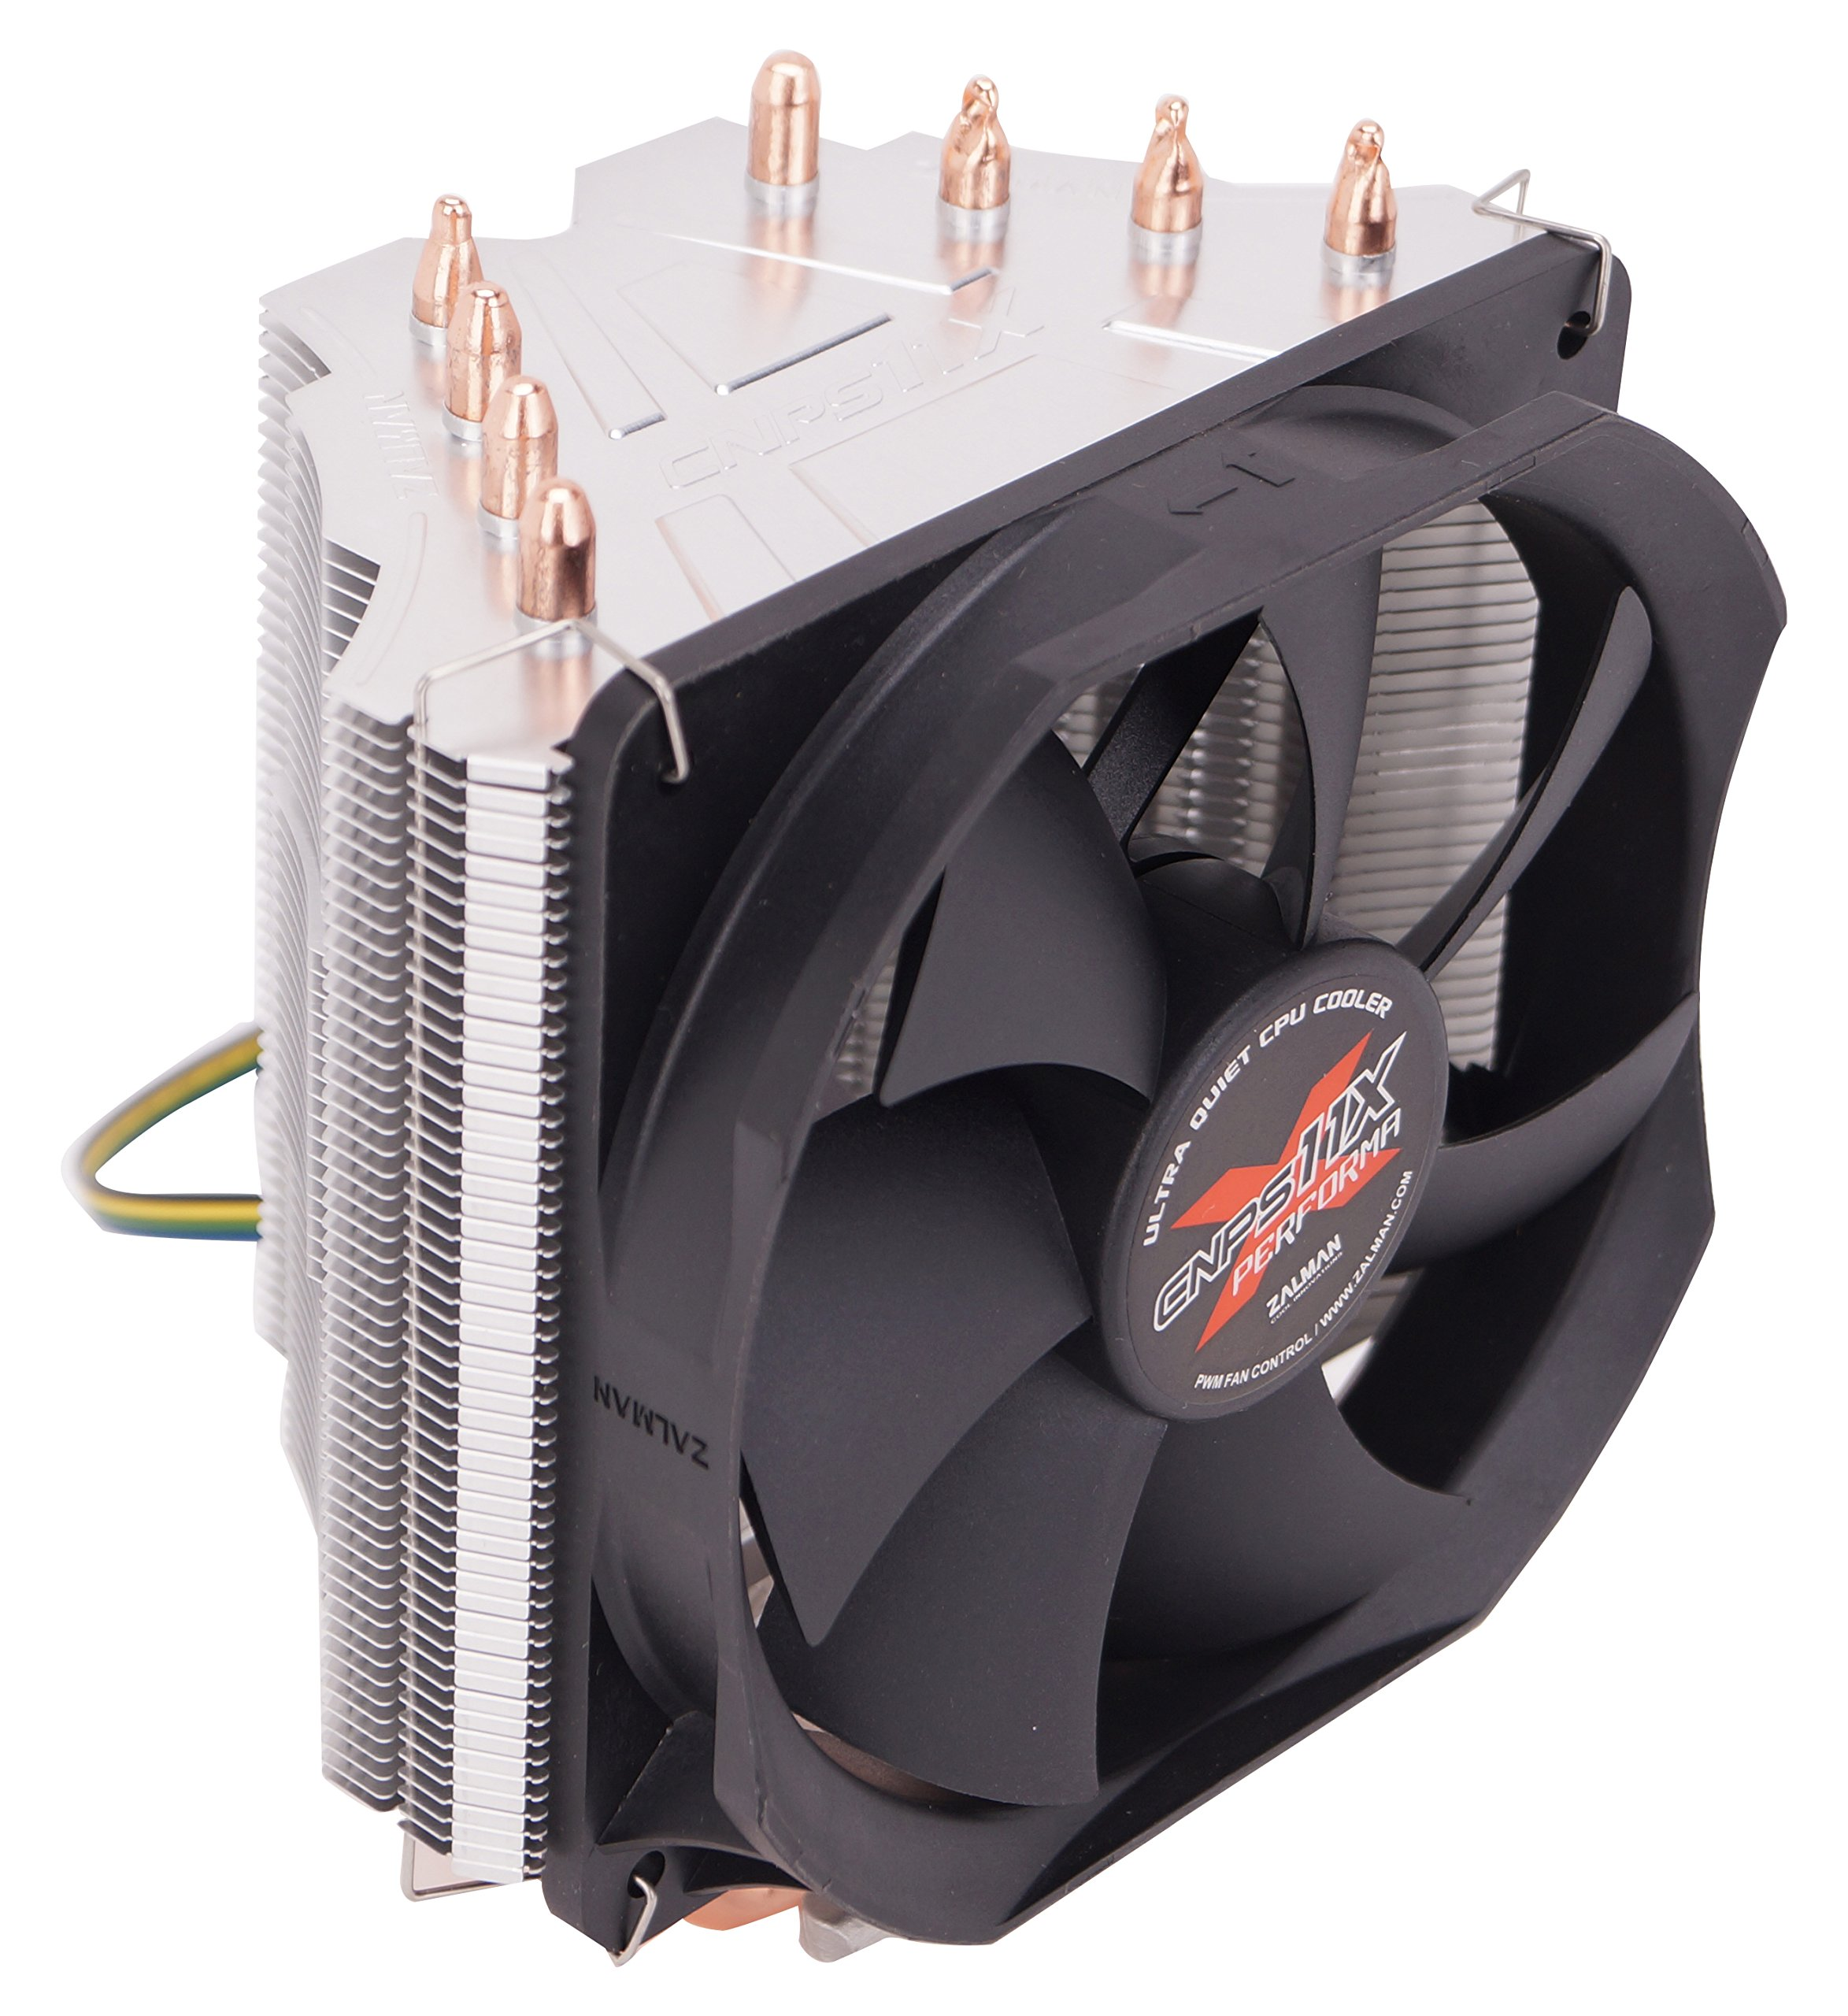 Zalman Ultra Quiet CPU Cooler with 4 Direct Touch Heatpipe Cooling, Silver (CNPS11X Performa+)